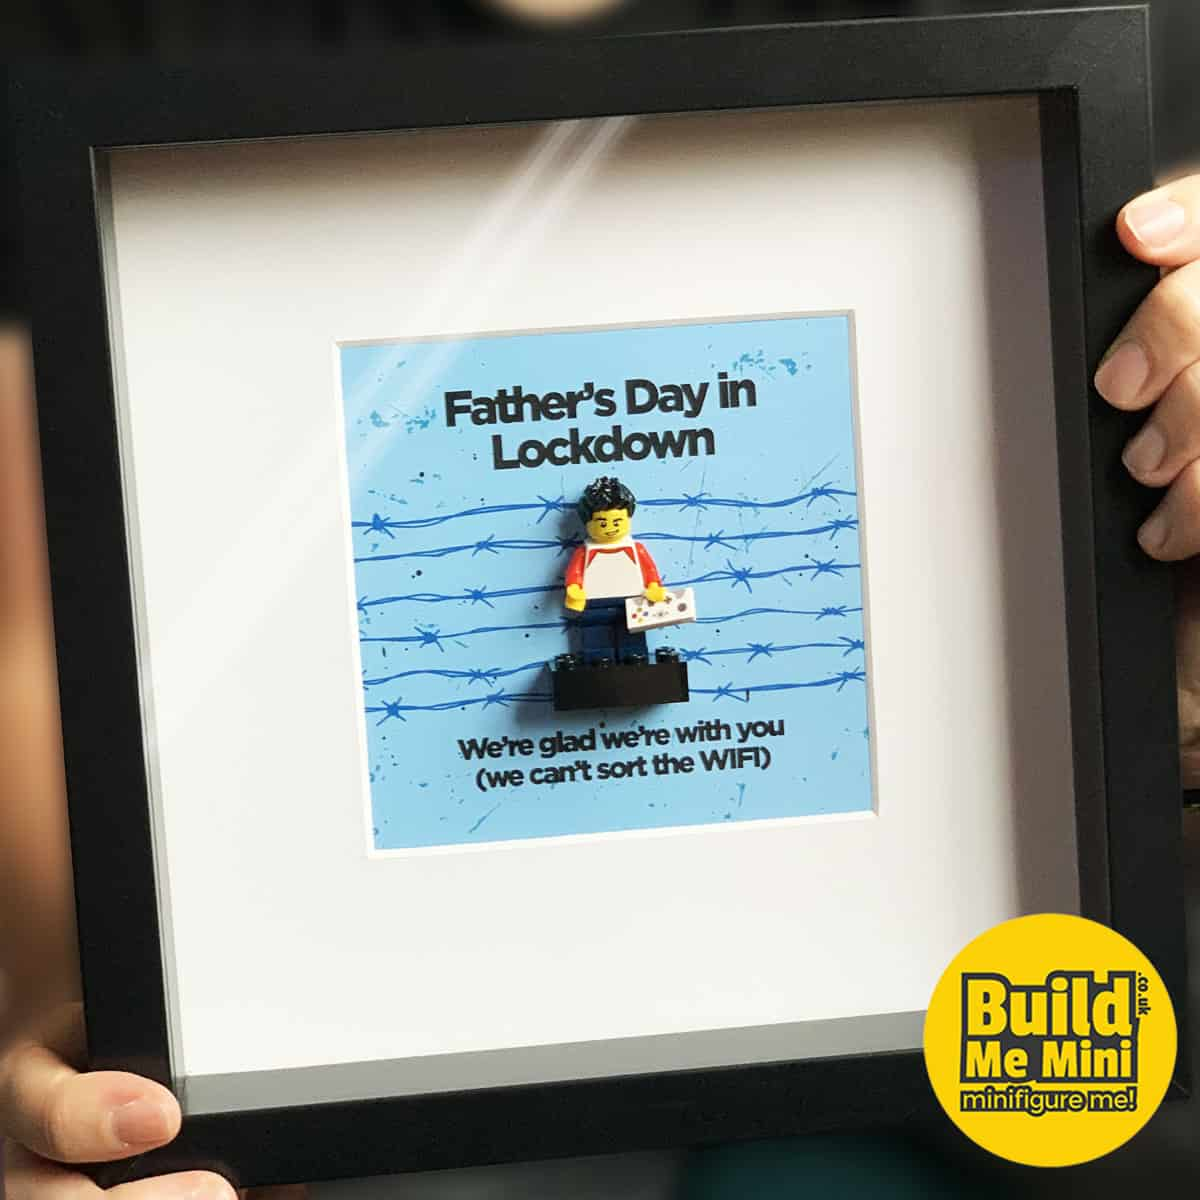 Lockdown Father's Day Gift Minifigure Frame LEGO® Fans